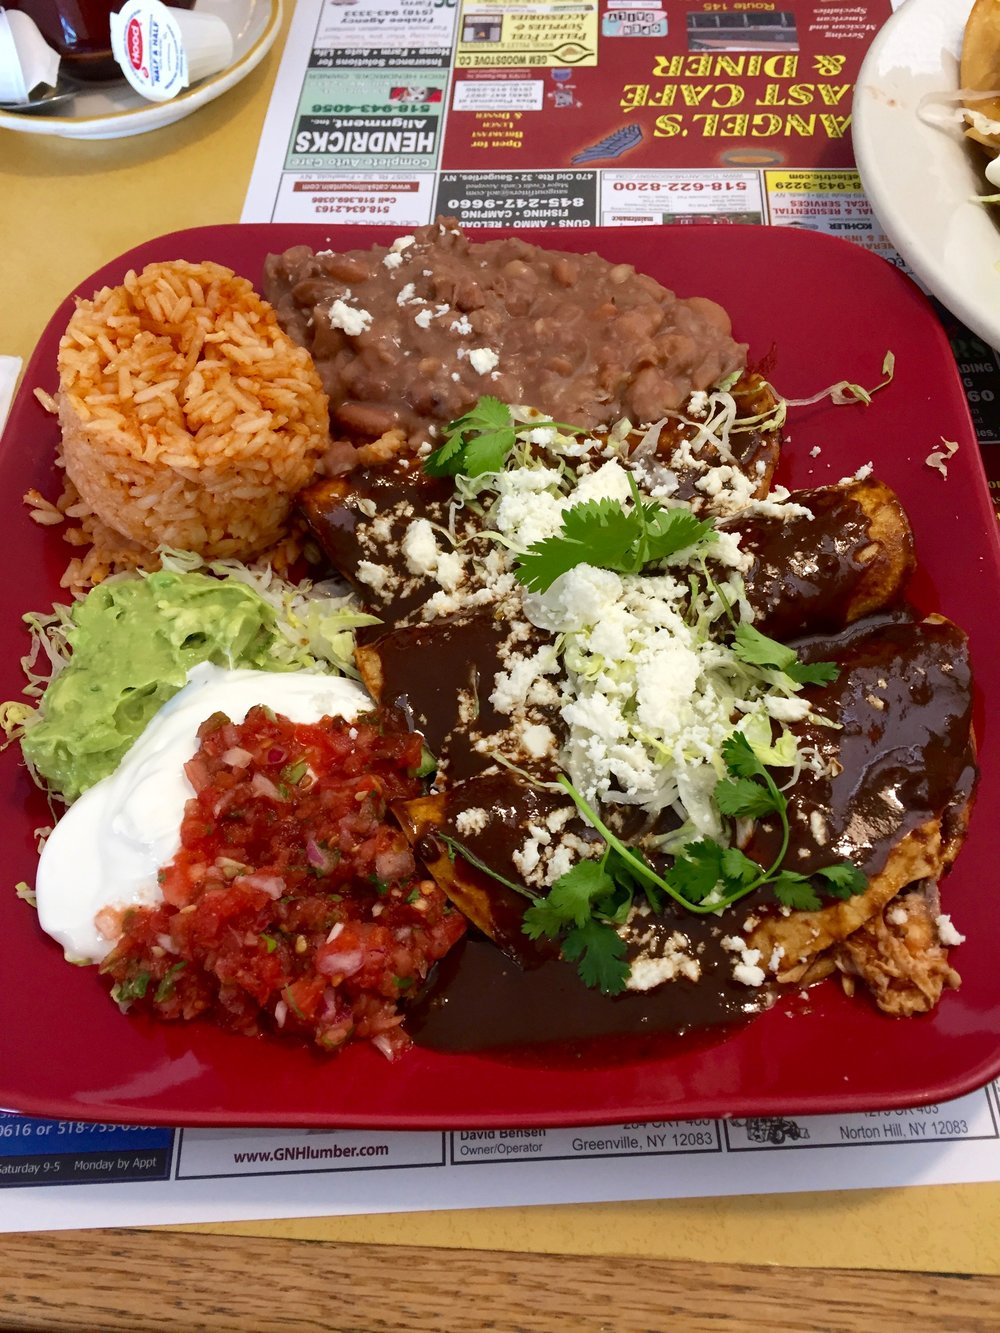 Enchiladas from Angel's Cafe in East Durham, NY